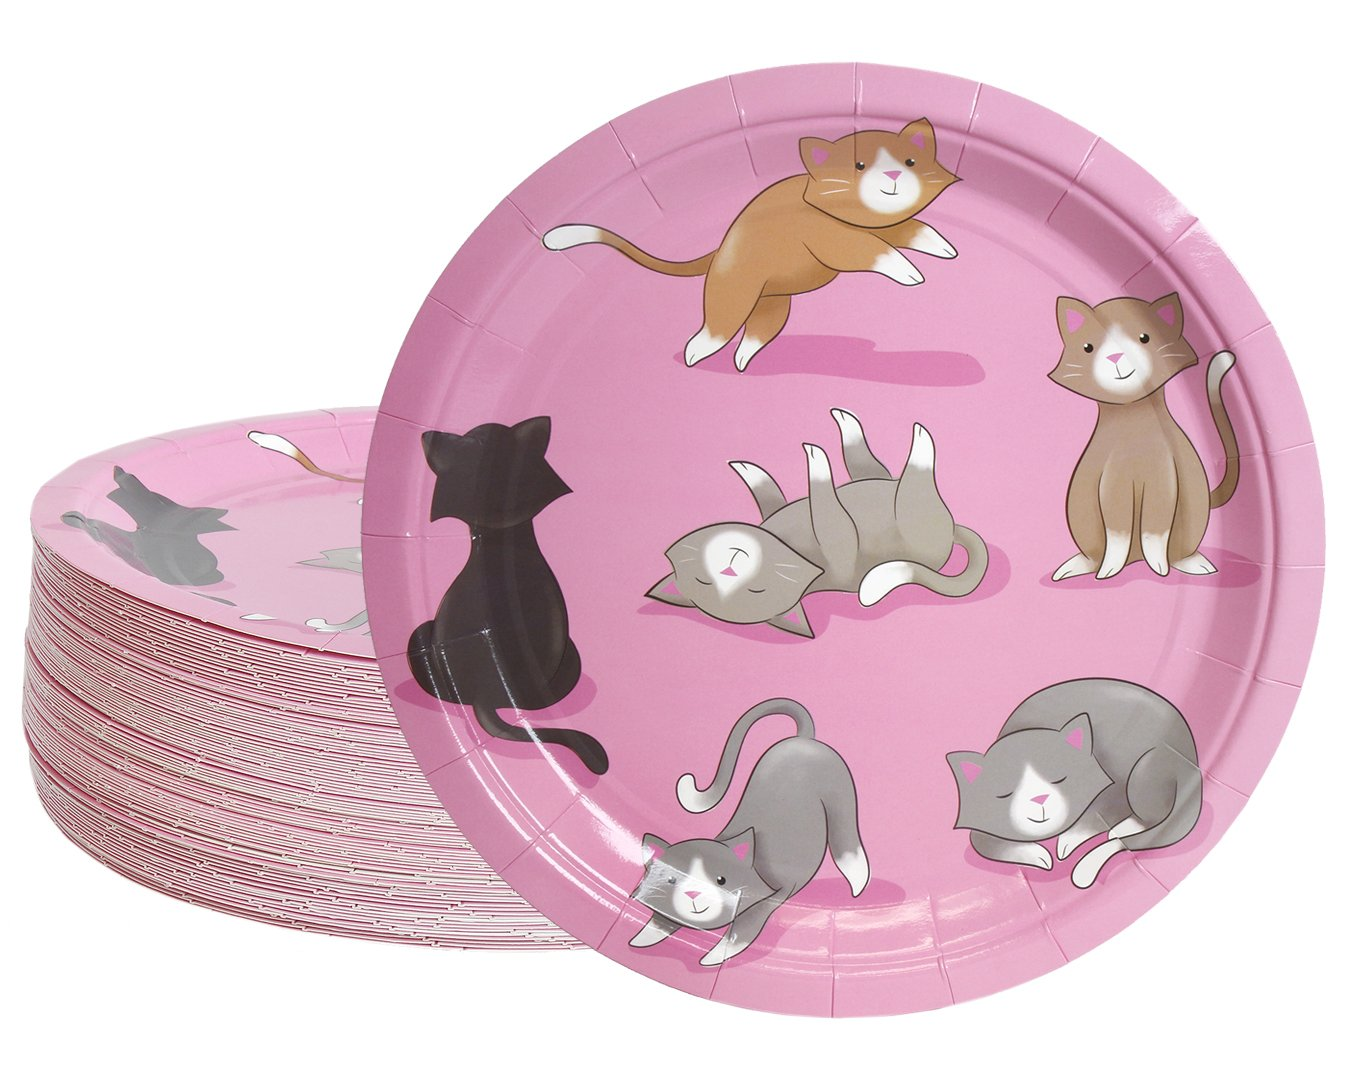 Disposable Plates - 80-Count Paper Plates, Cat Party Supplies for Appetizer, Lunch, Dinner, and Dessert, Kids Birthdays, 9 inches in Diameter by Blue Panda